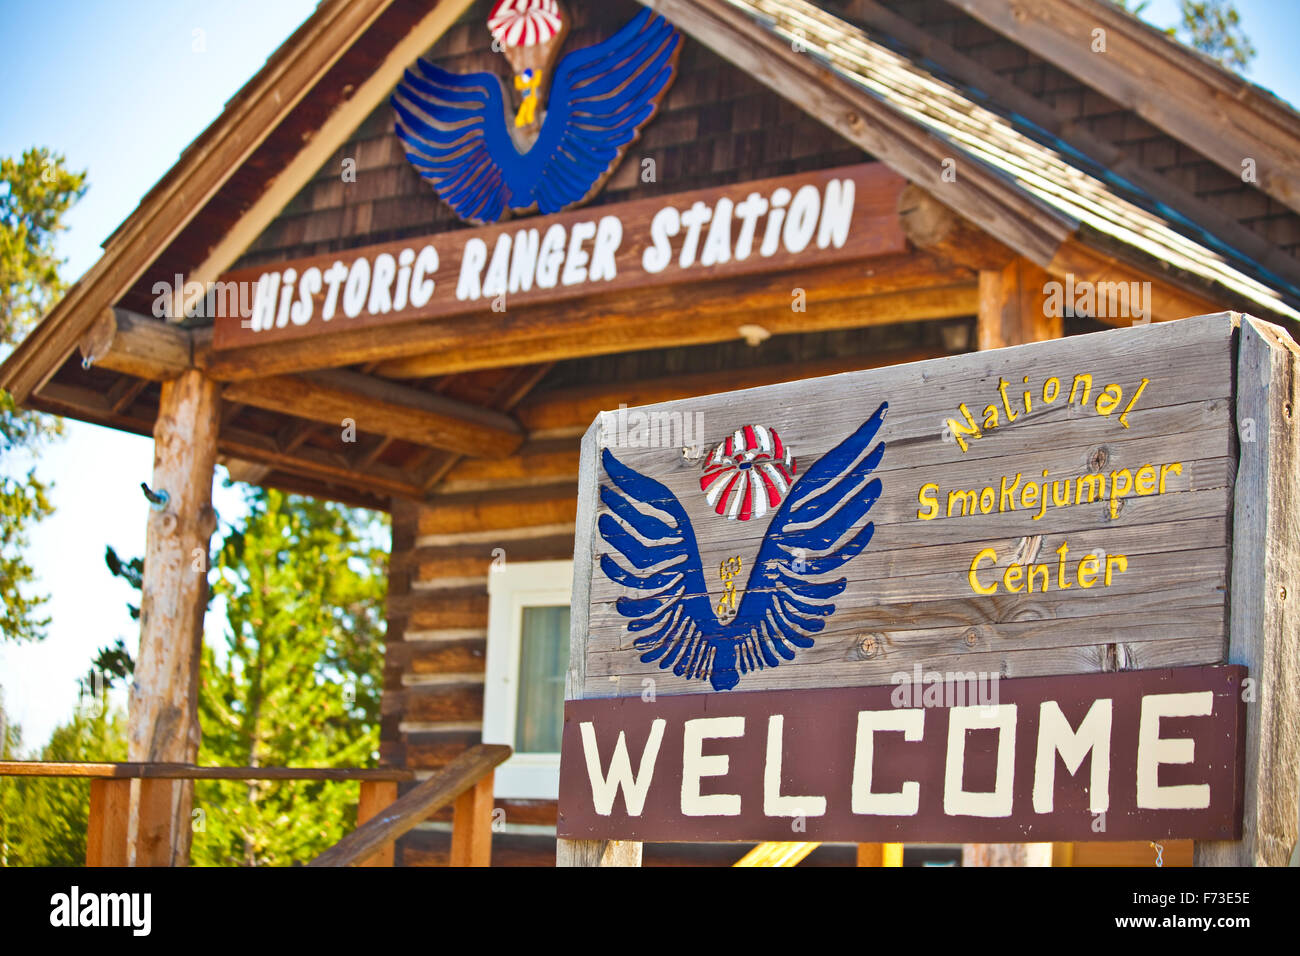 National Smokejumper Center, West Yellowstone, MT. - Stock Image